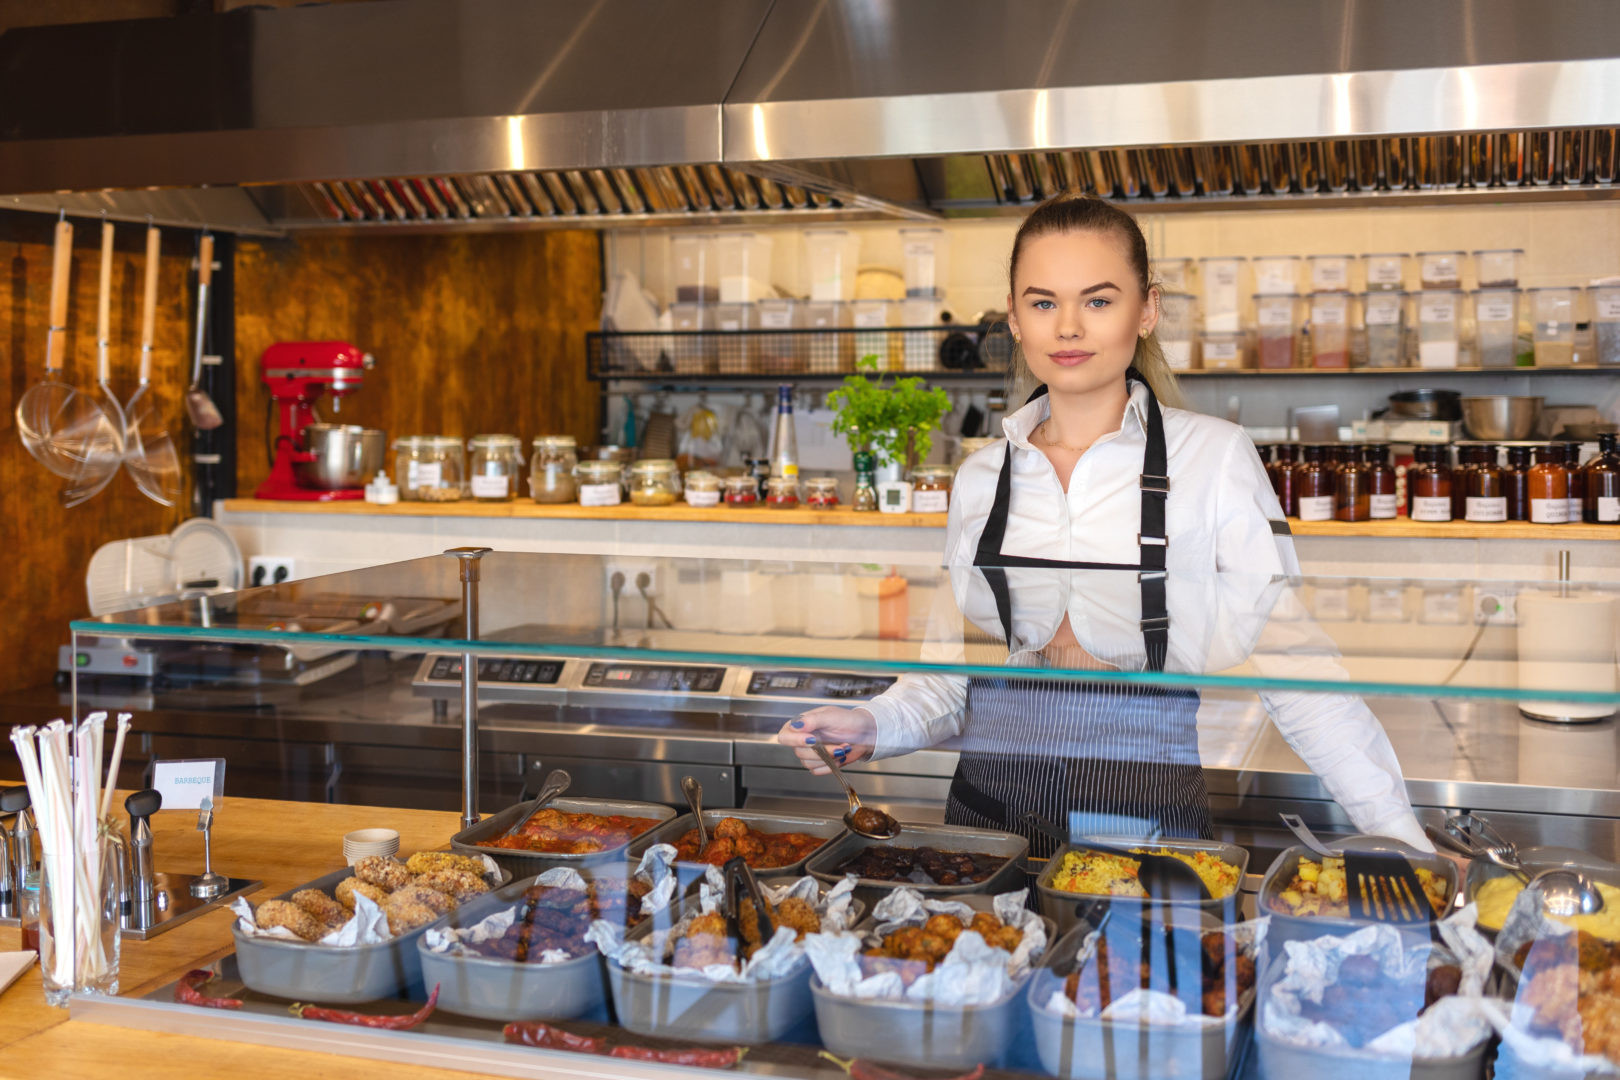 New business owner or woman waitress working behind counter in small restaurant serving food